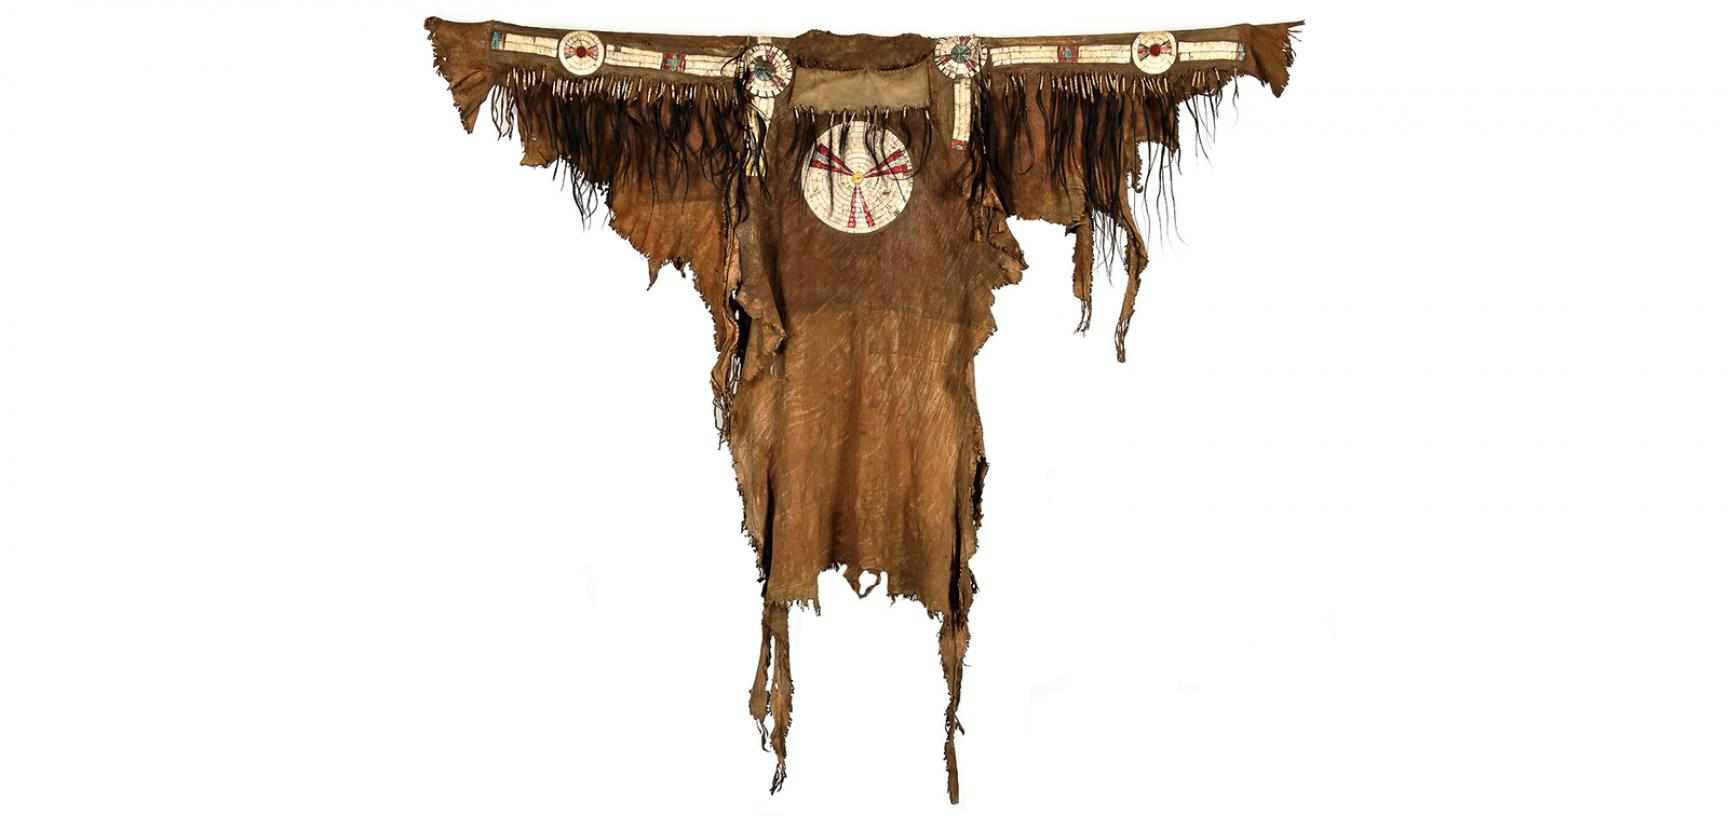 Blackfoot hide shirt (1893.67.4) after conservation